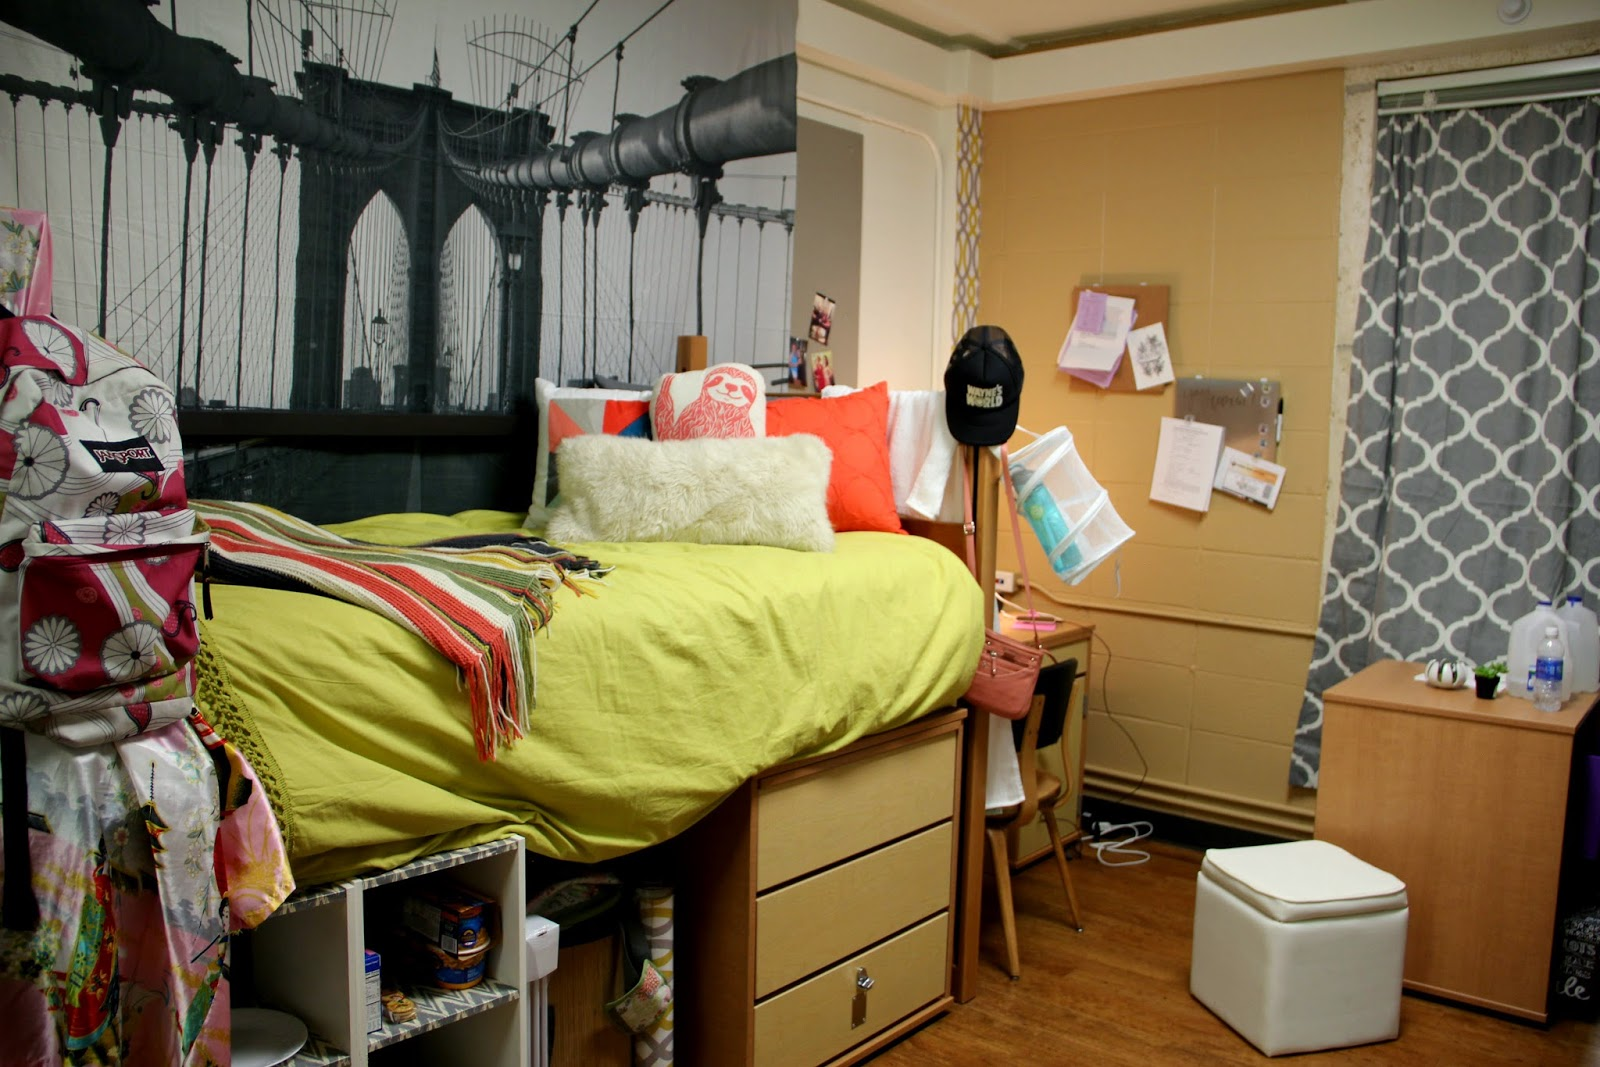 Things To Keep Things In Dorm Room Smelling Good